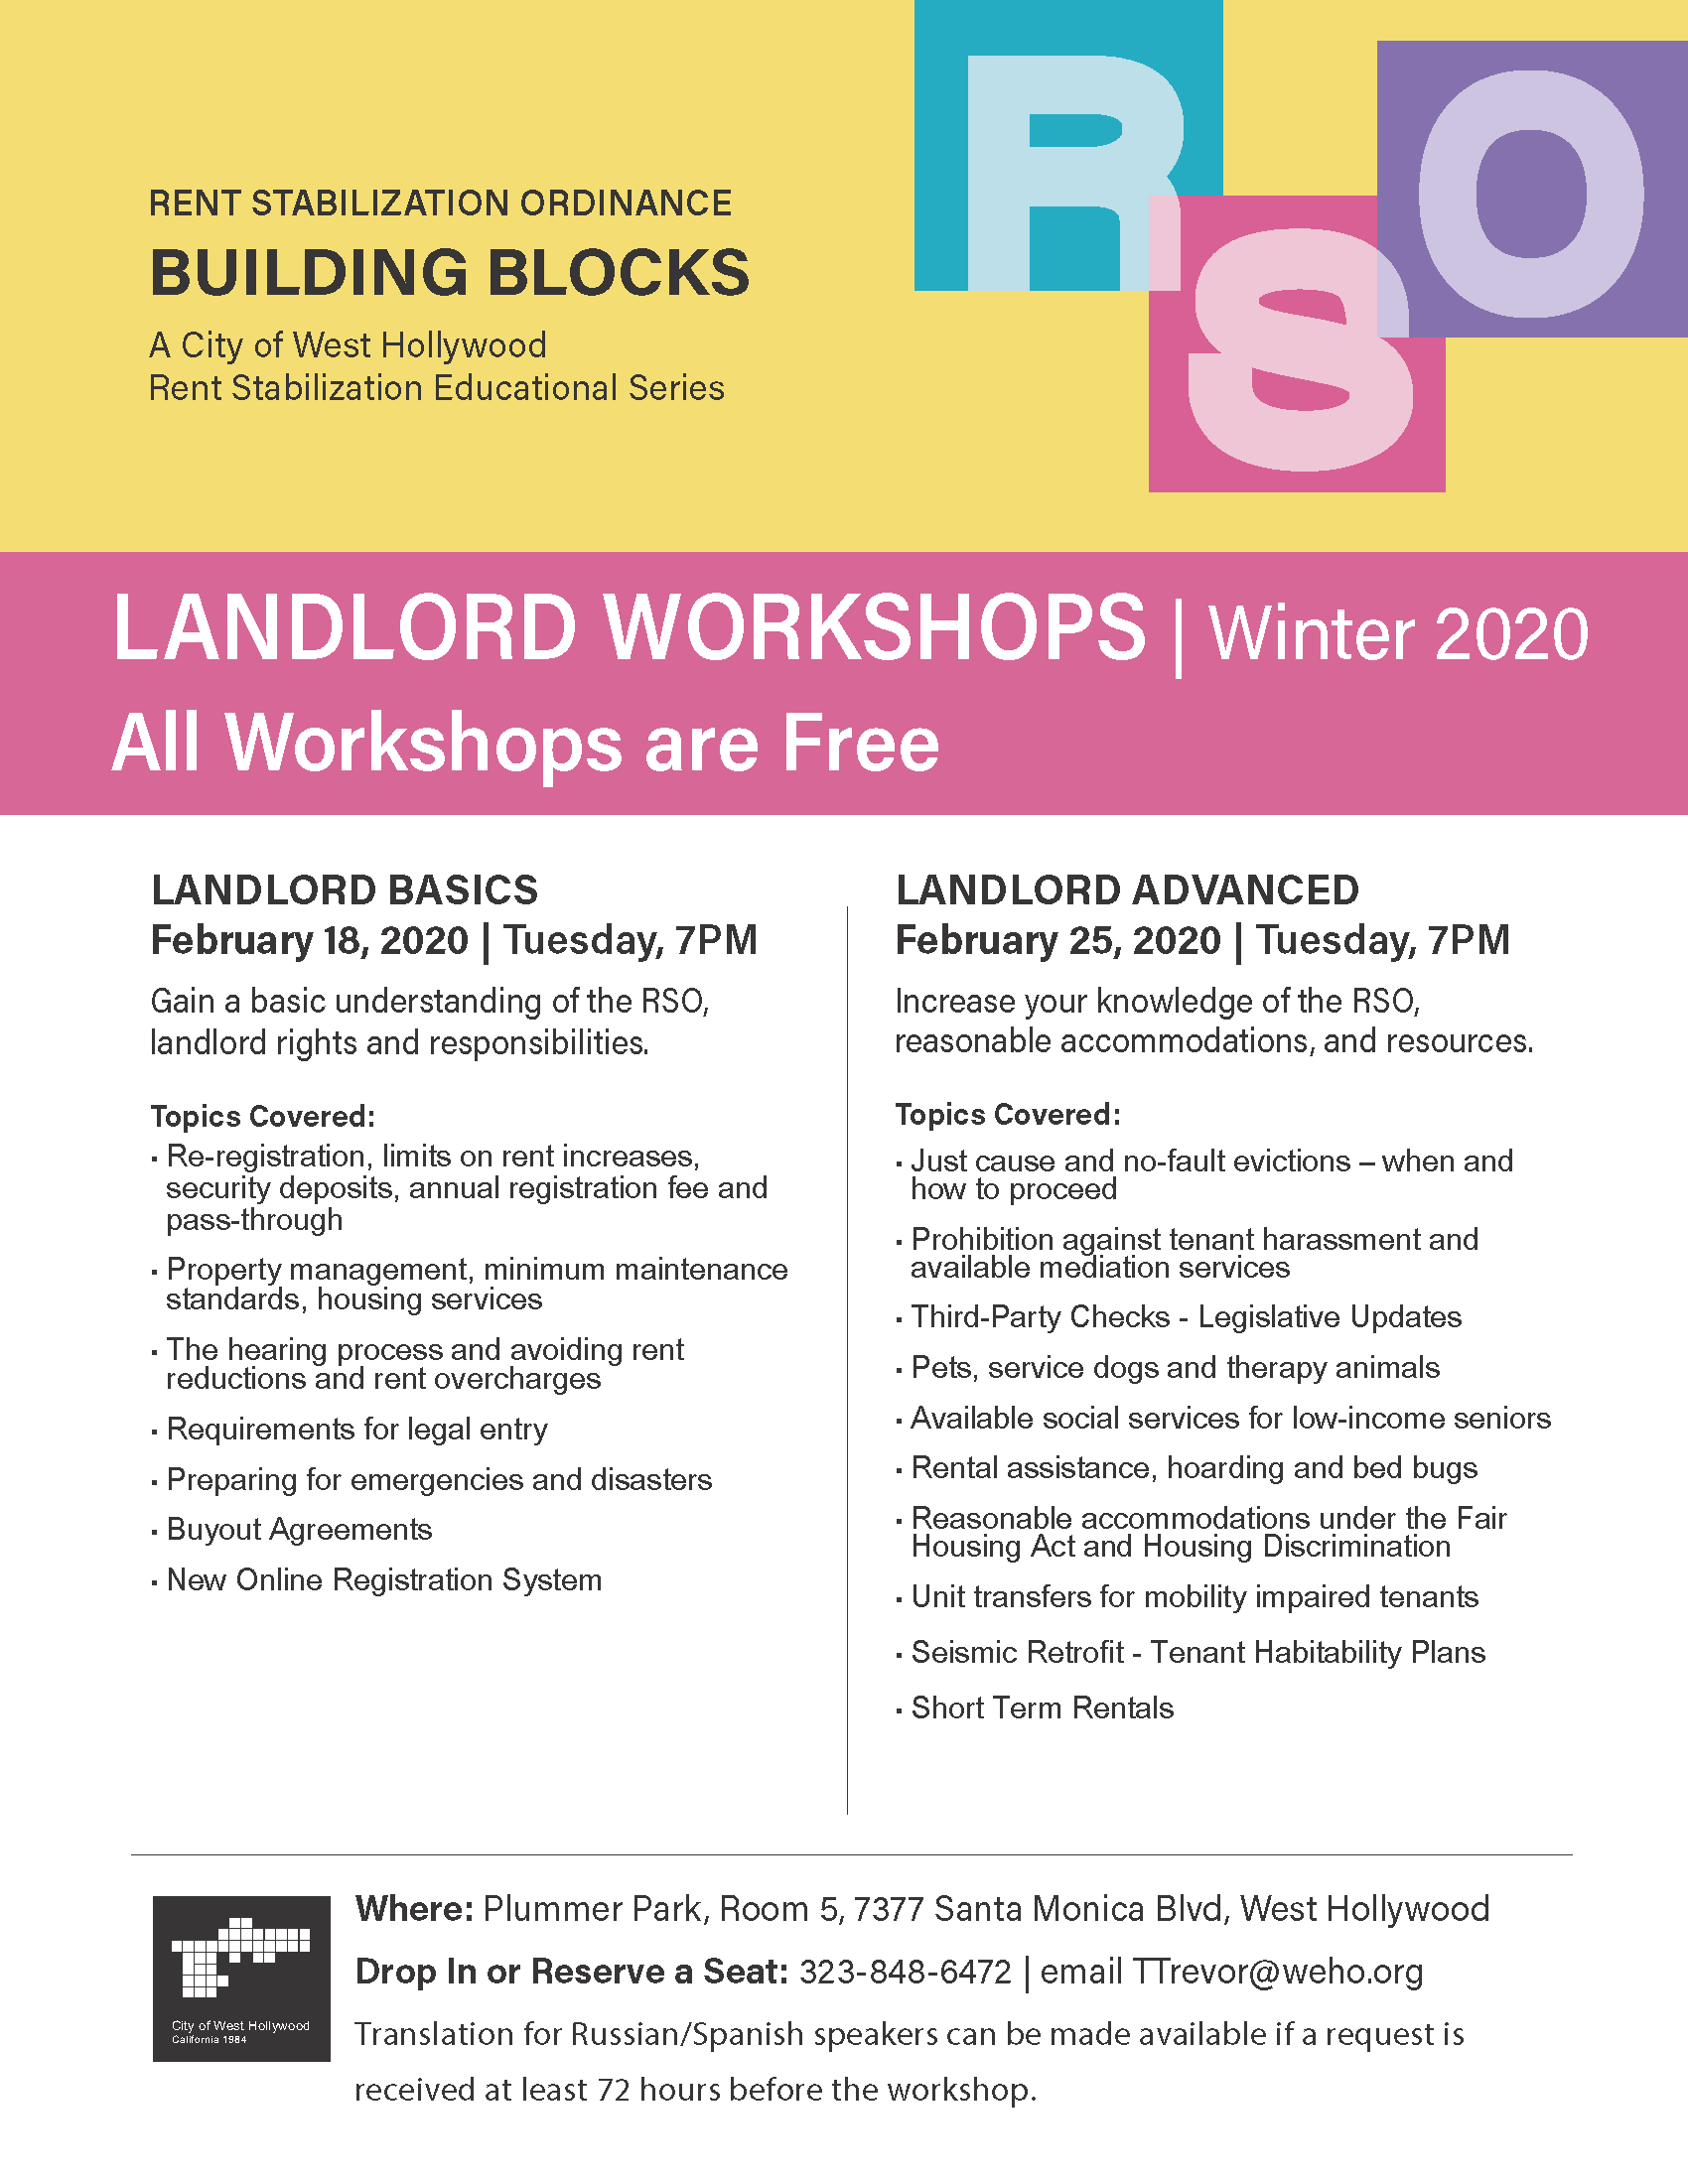 Building Blocks FEBRUARY 2020 FLIER - LANDLORD